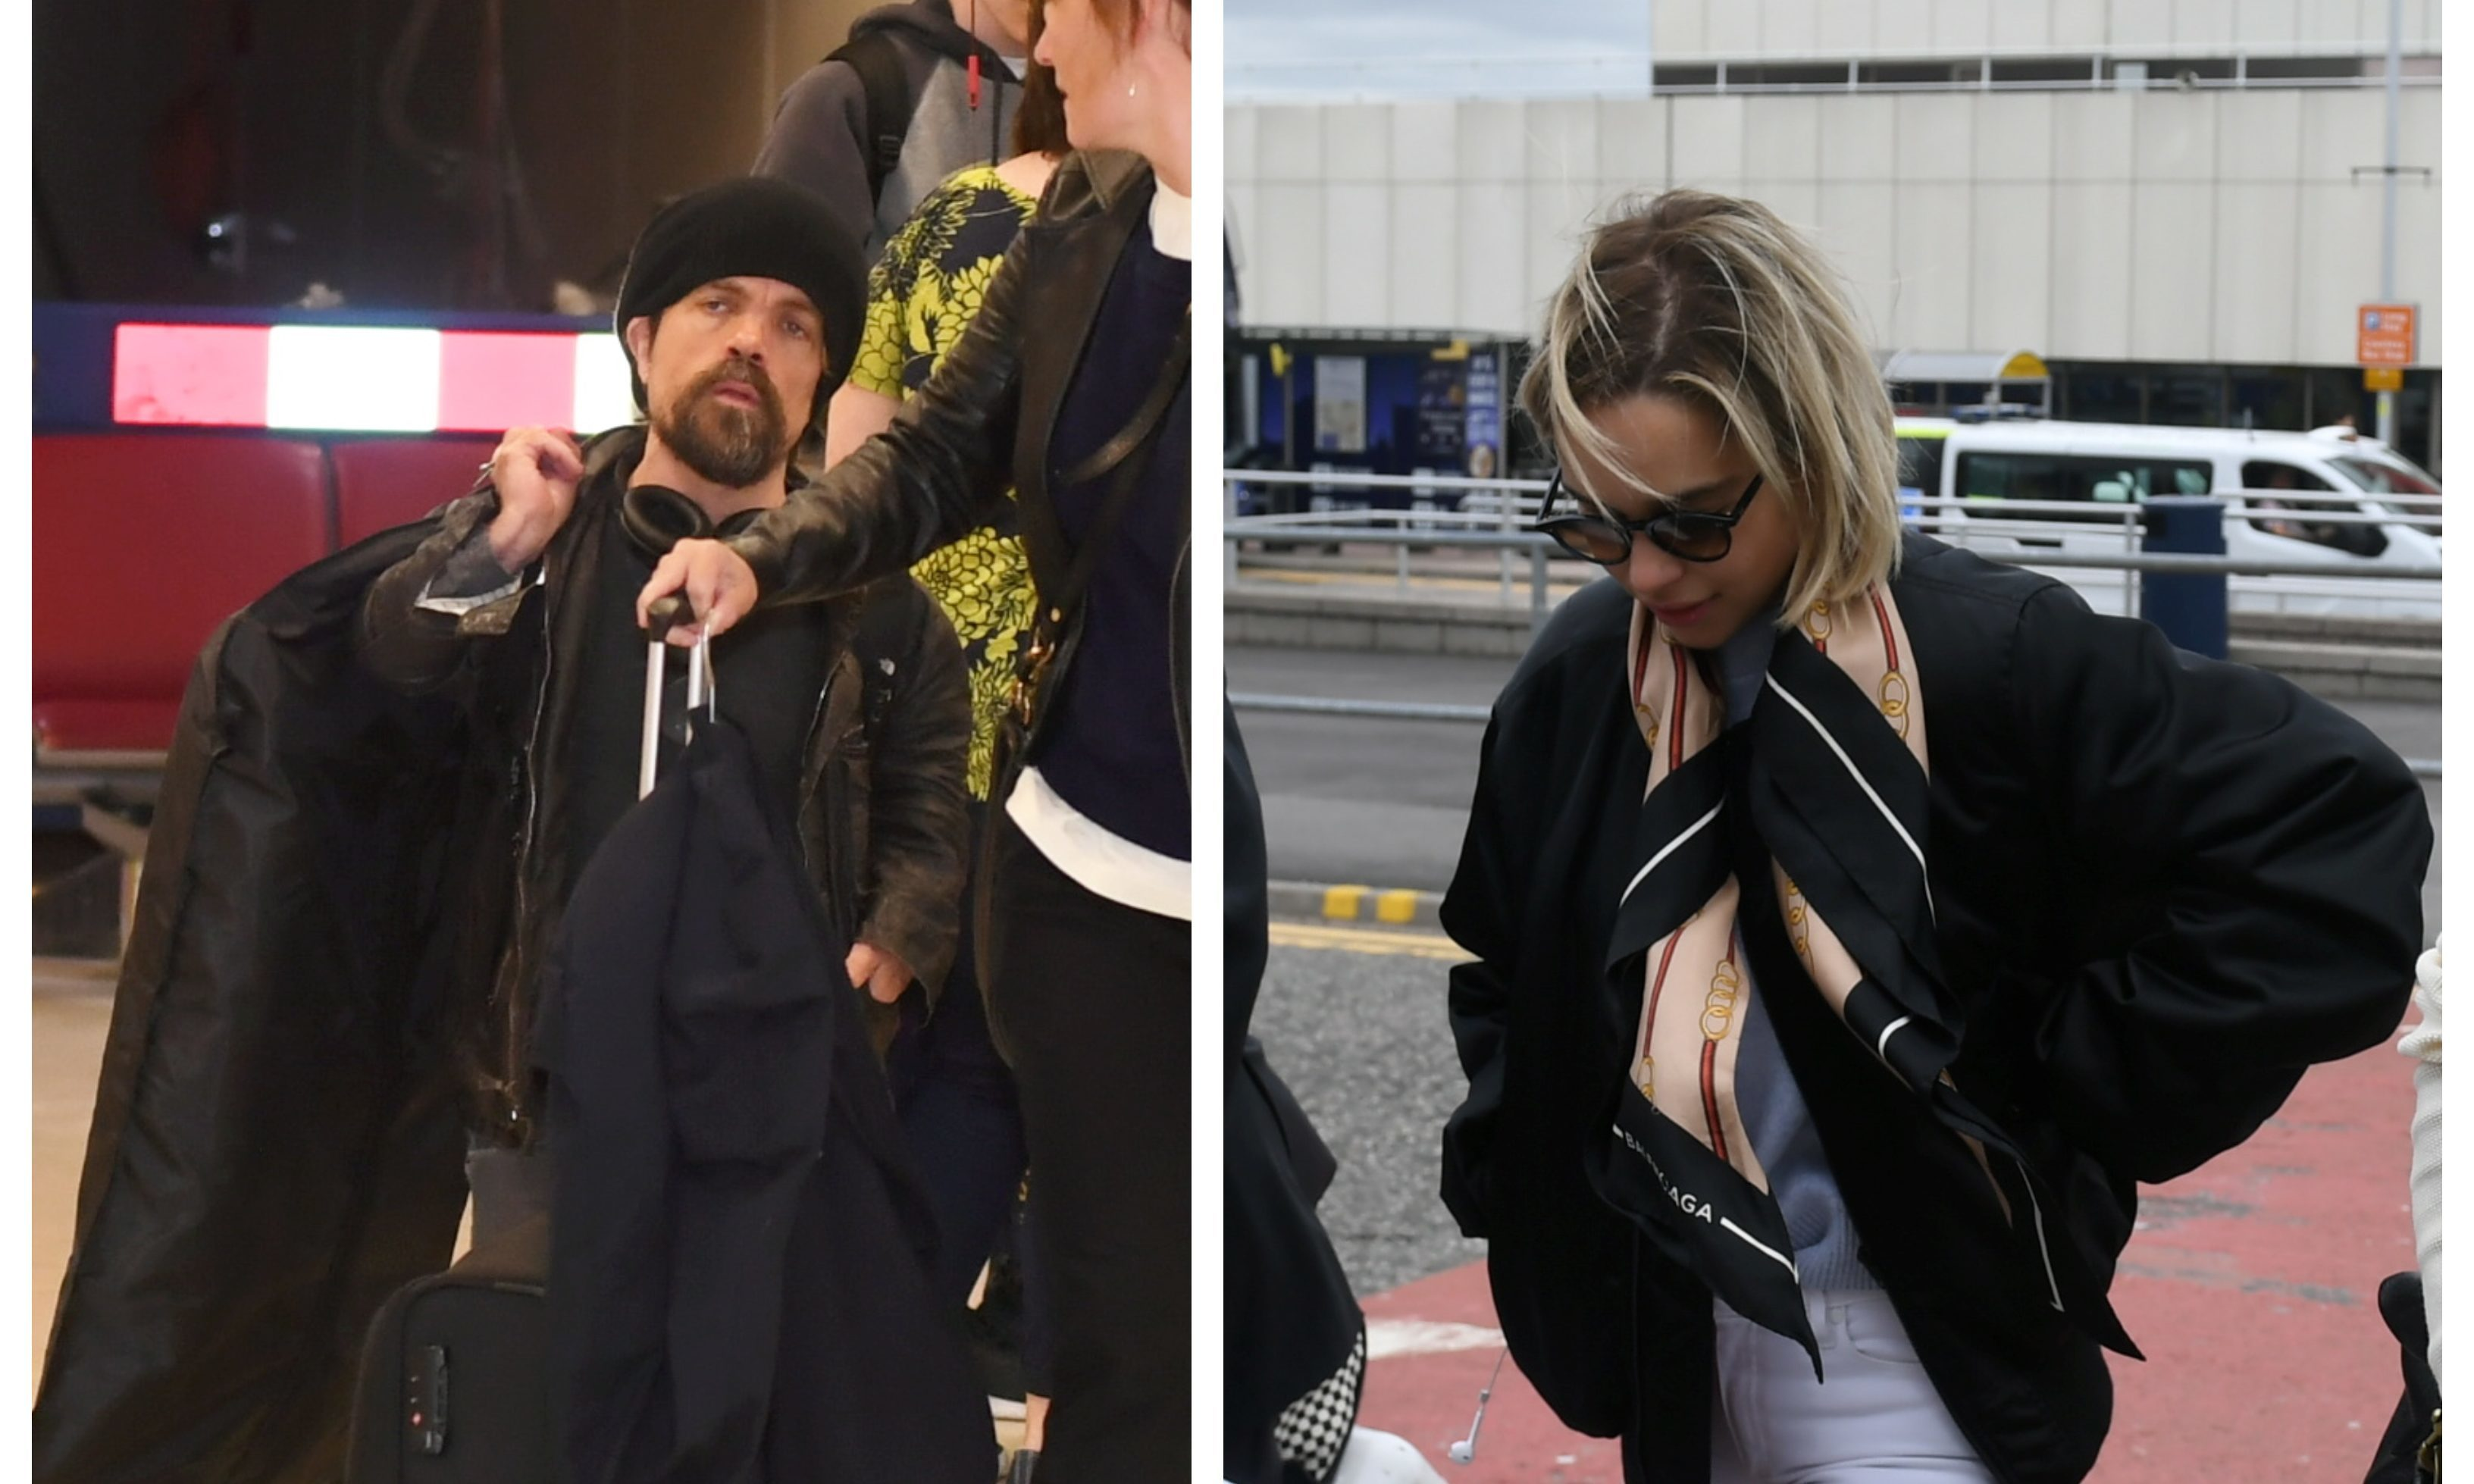 Peter Dinklage and Emilia Clarke both arrived at Aberdeen Airport.